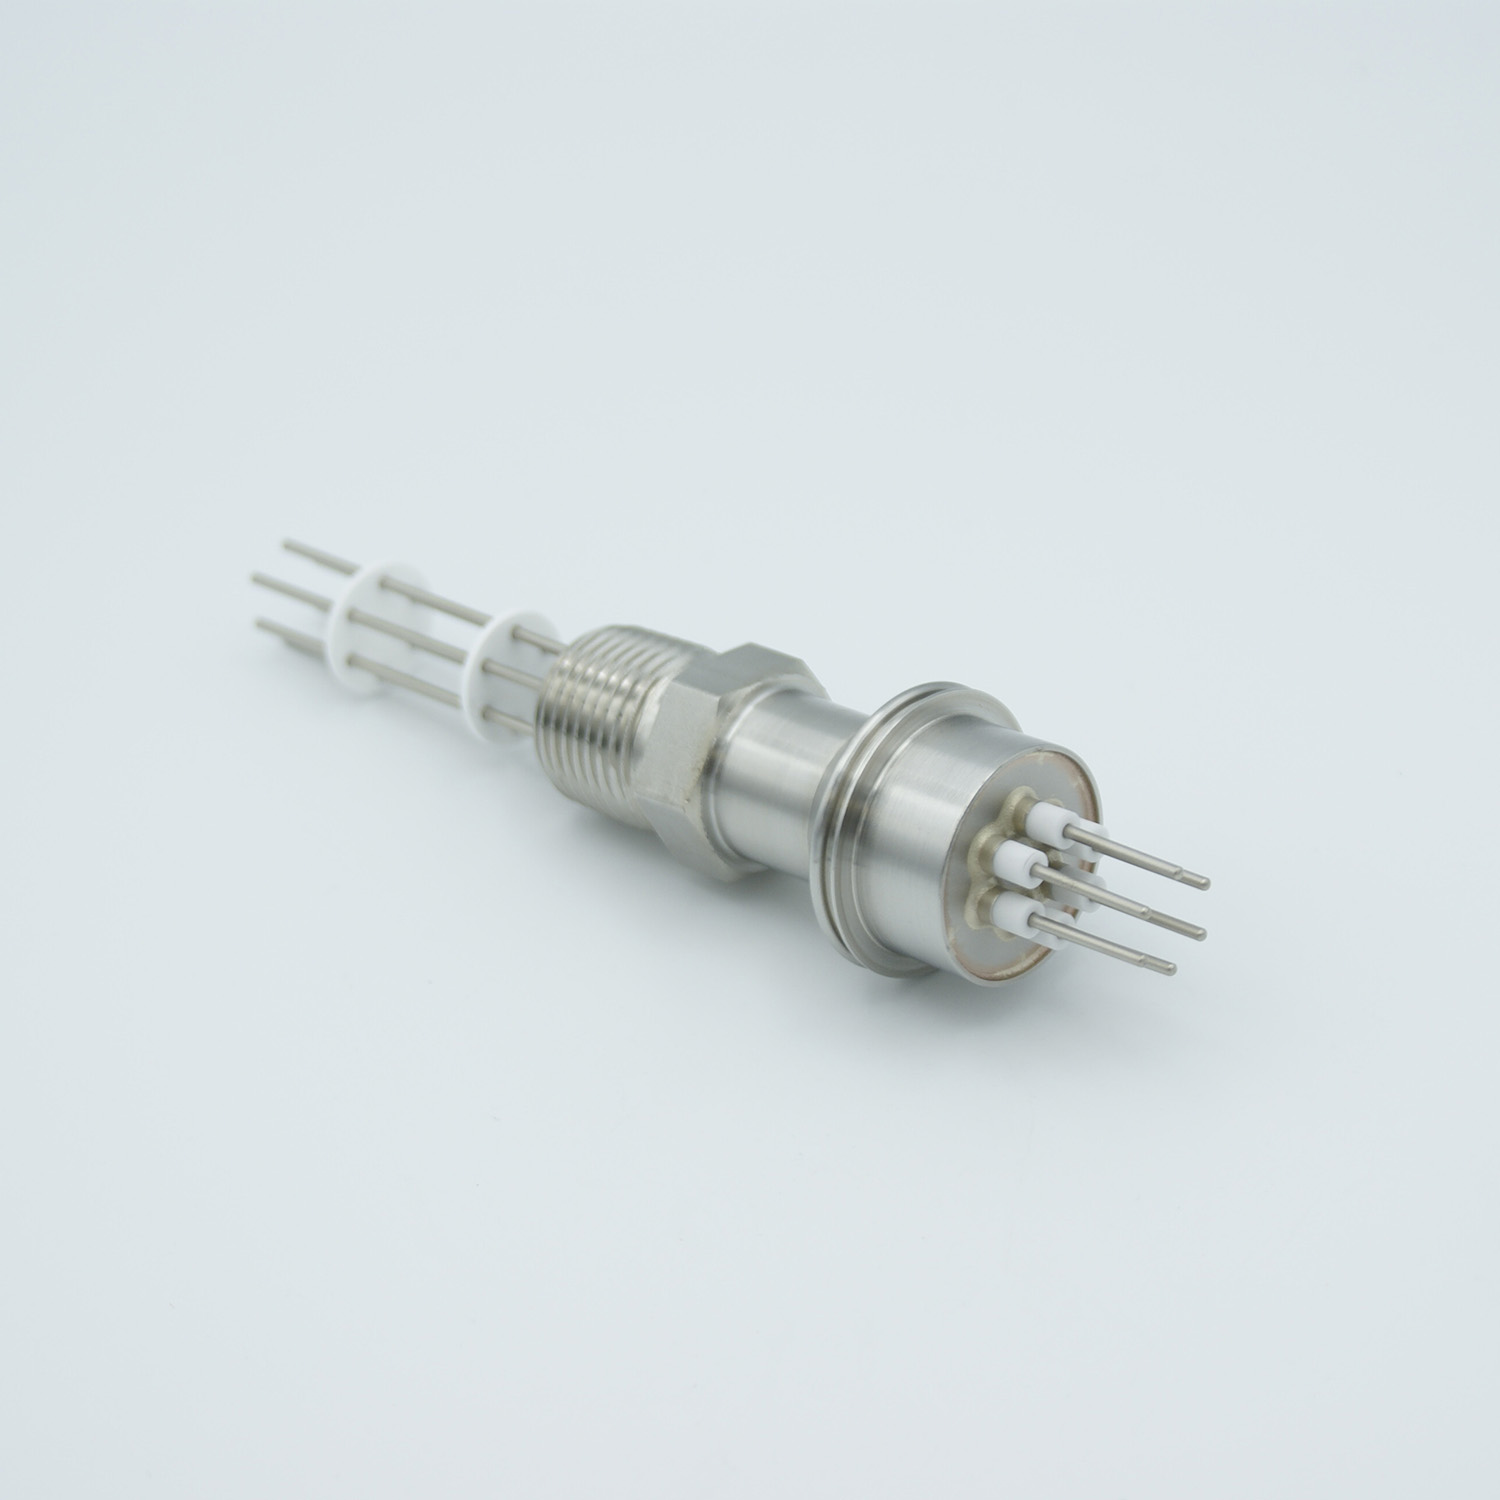 3 pair Thermocouple type-E feedthrough for push on connectors, 1/2